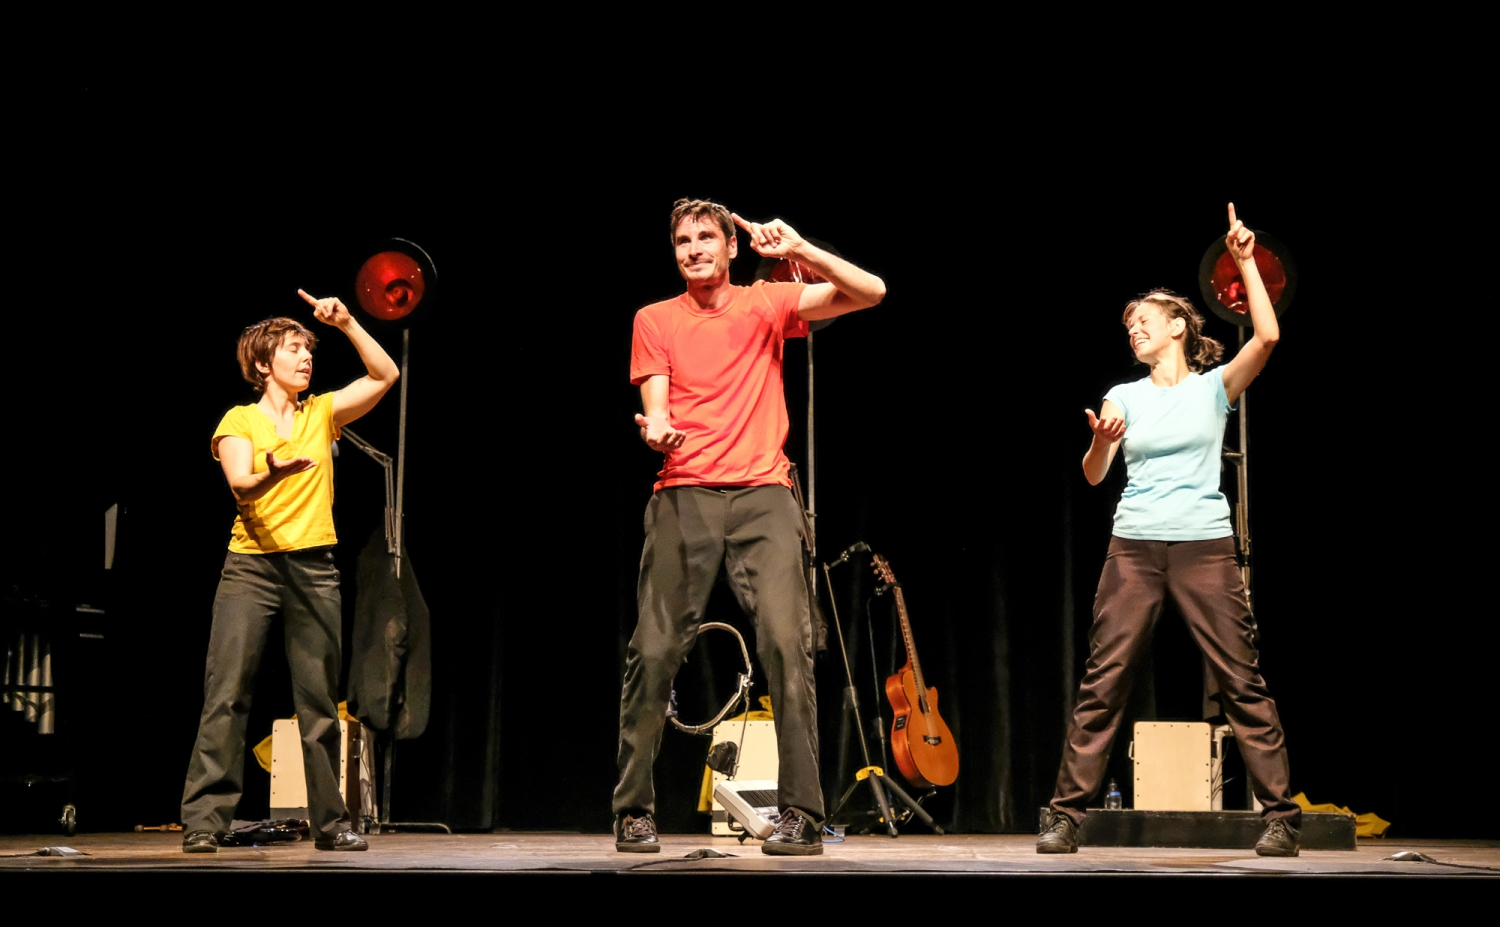 ŻiguŻajg International Arts Festival for Children & Young People